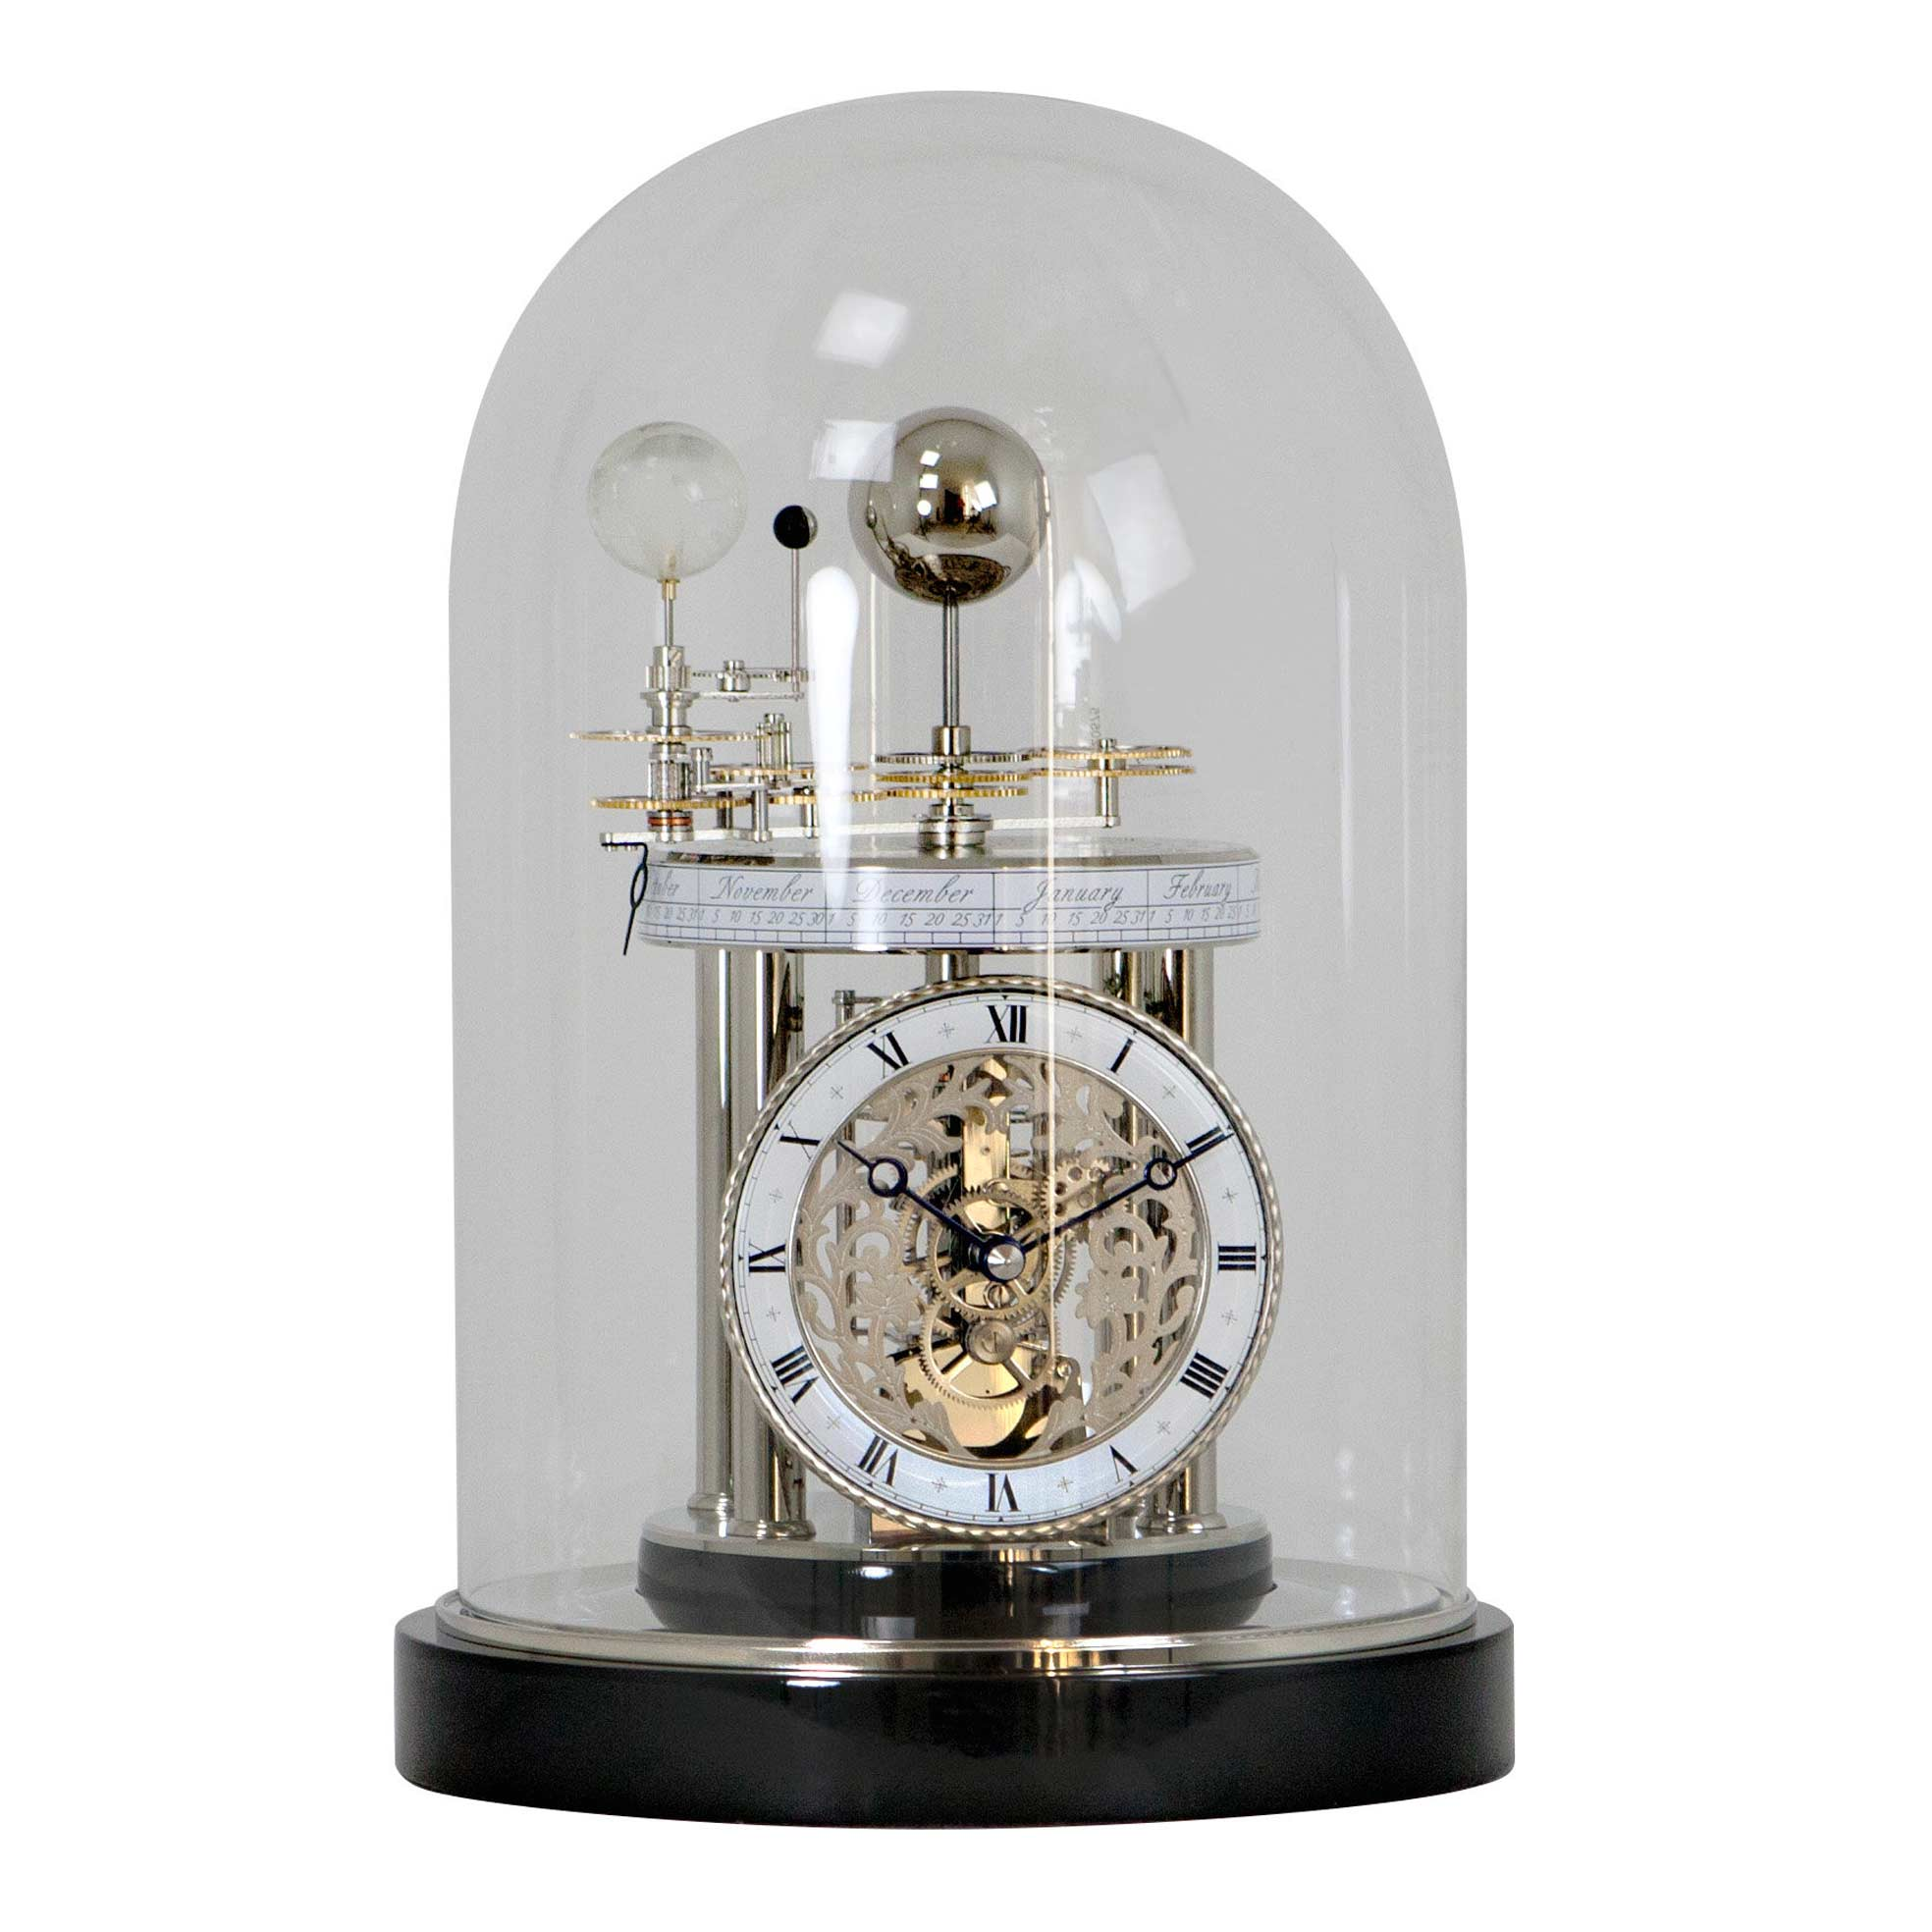 ABNEY-22836-742987-Astrolubium-Table-Clock